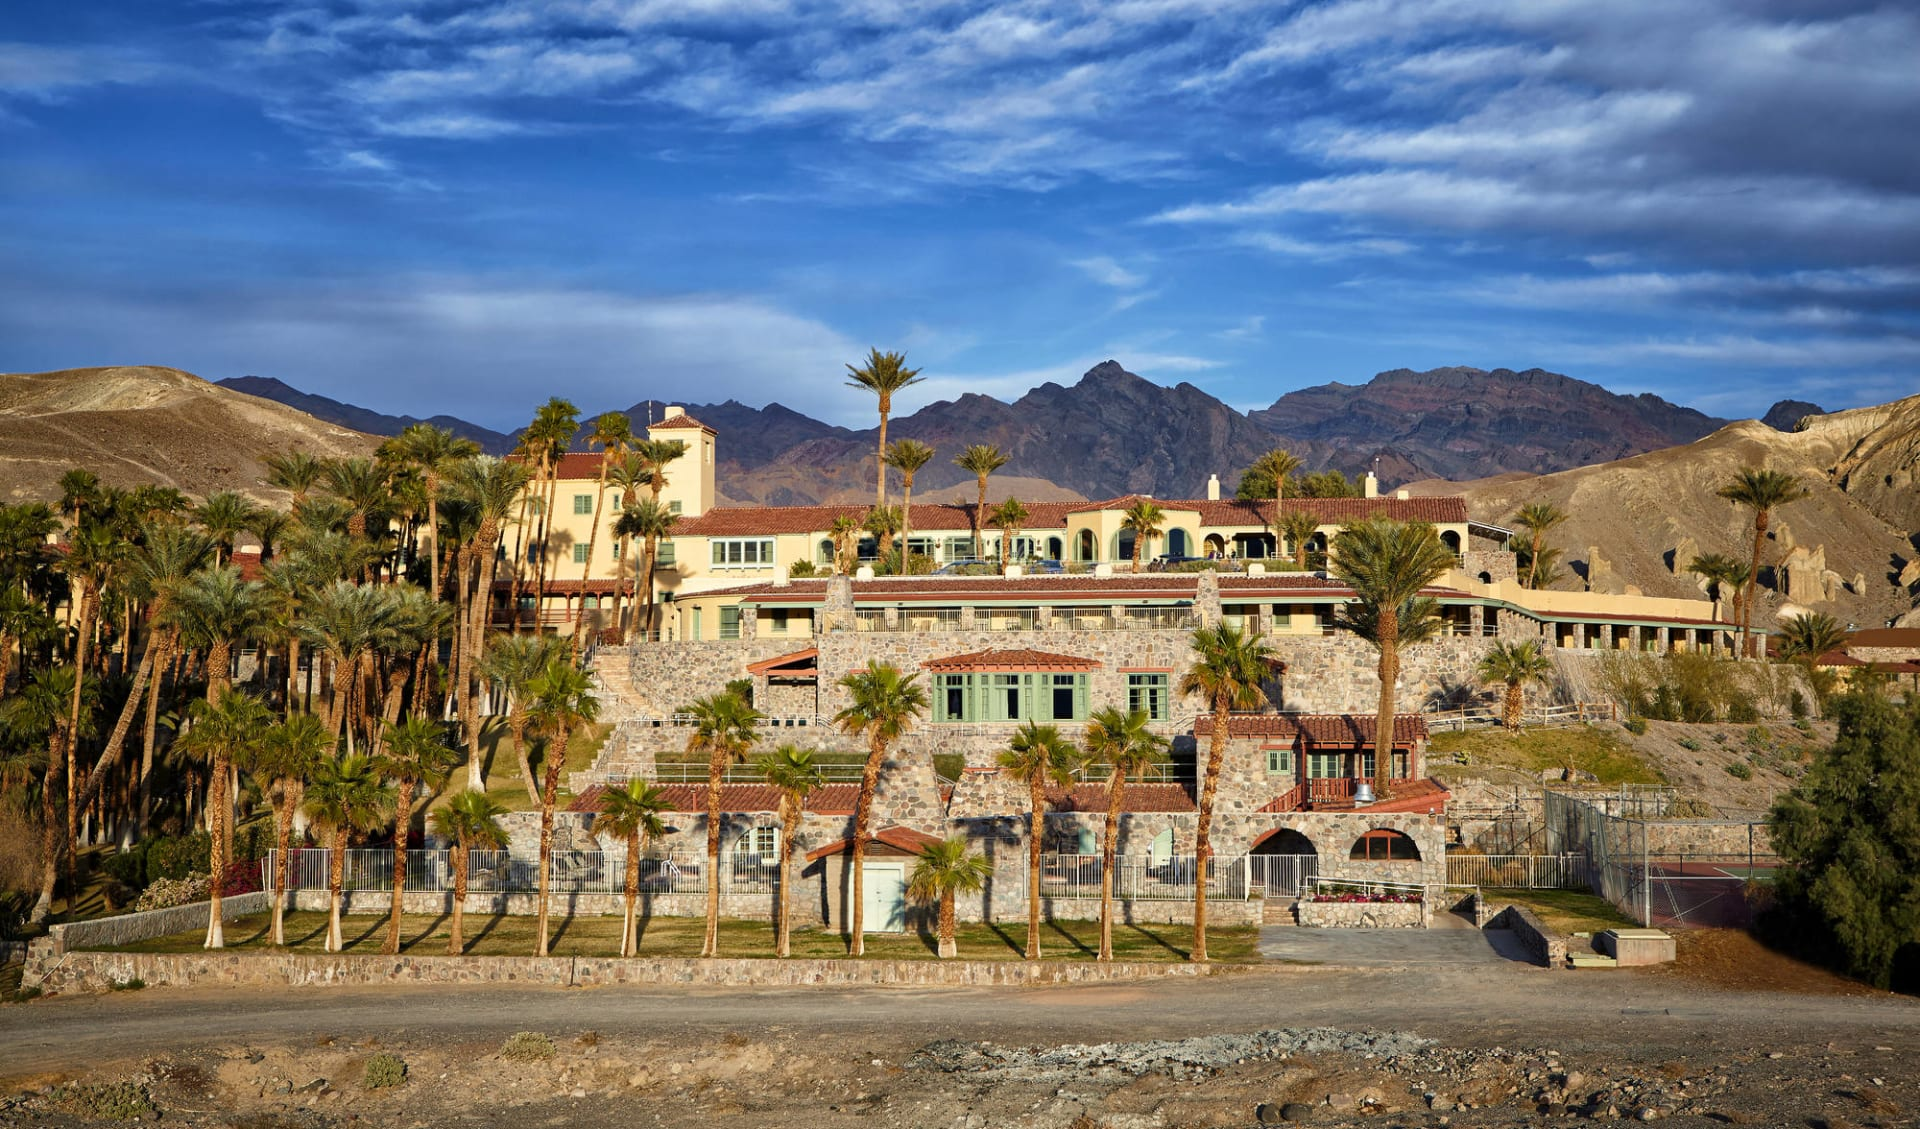 The Inn at Death Valley: Inn at Furnace Creek - exterior view of hotel